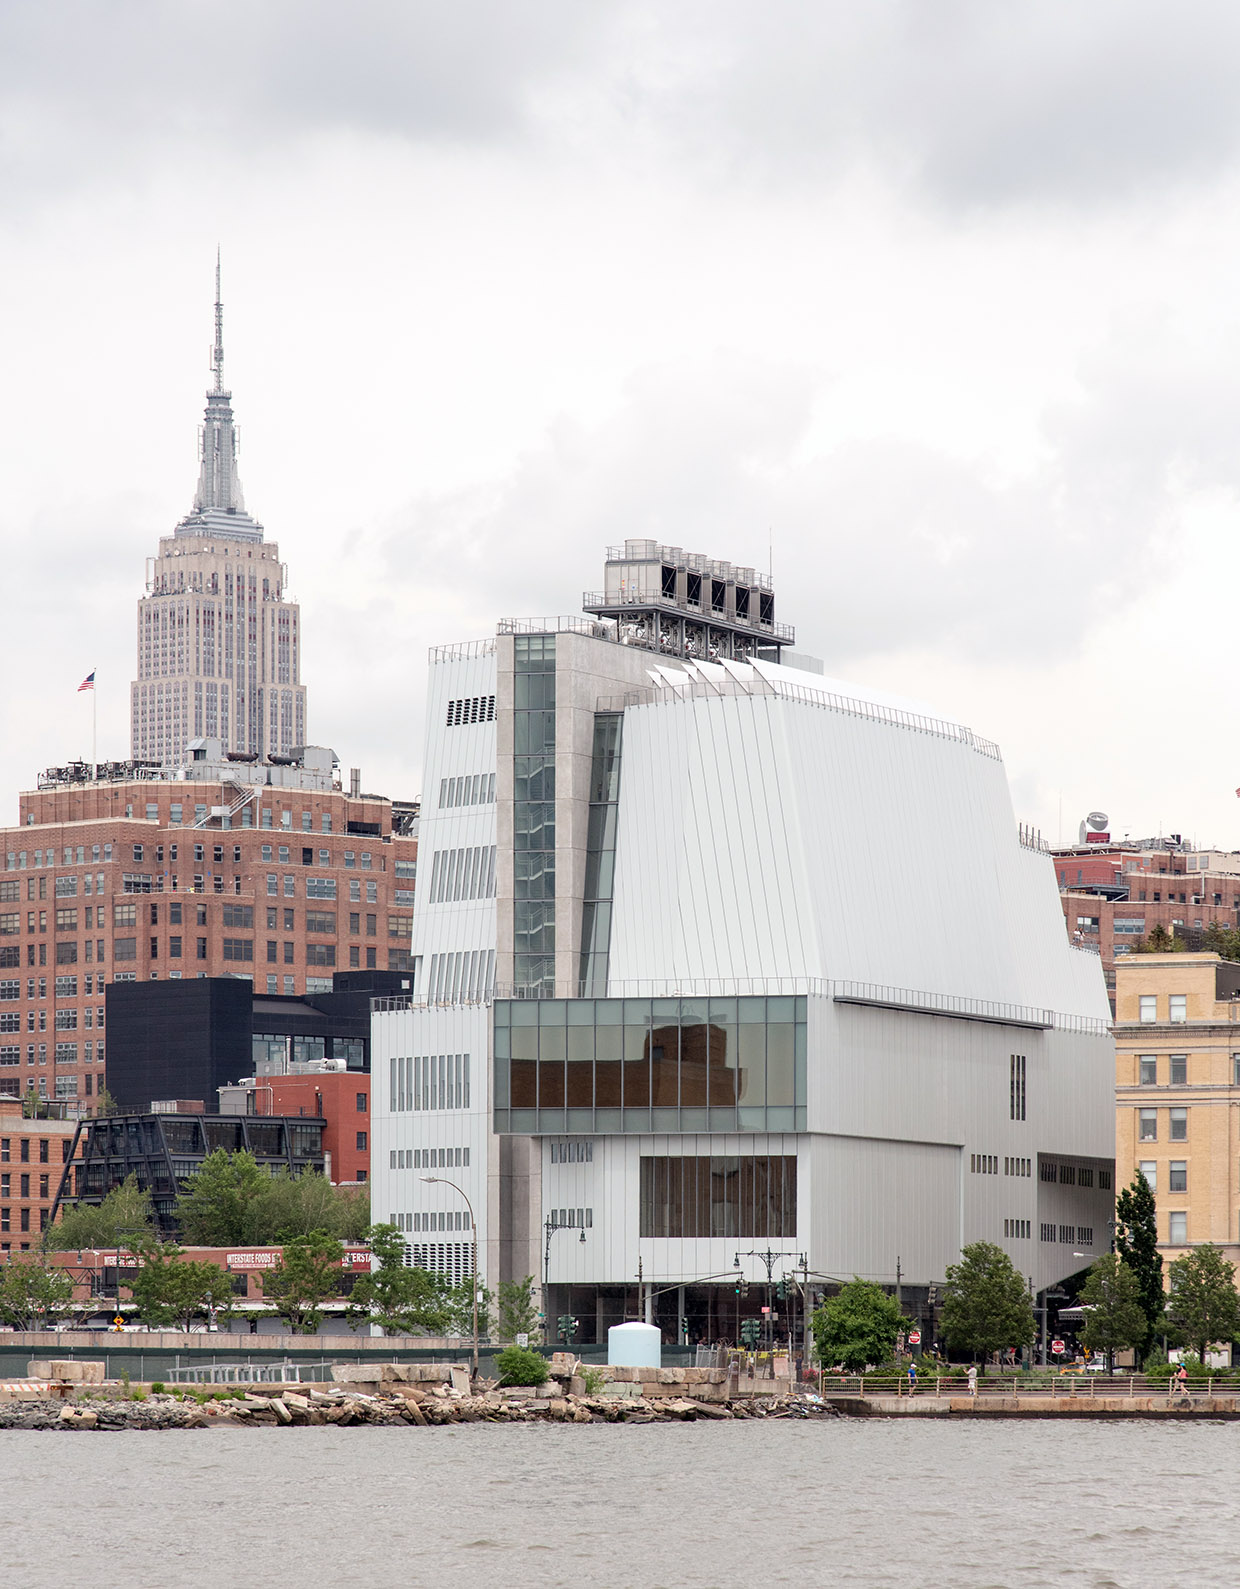 The new Whitney Museum and the Empire State Building from the Hudson River, NYC.